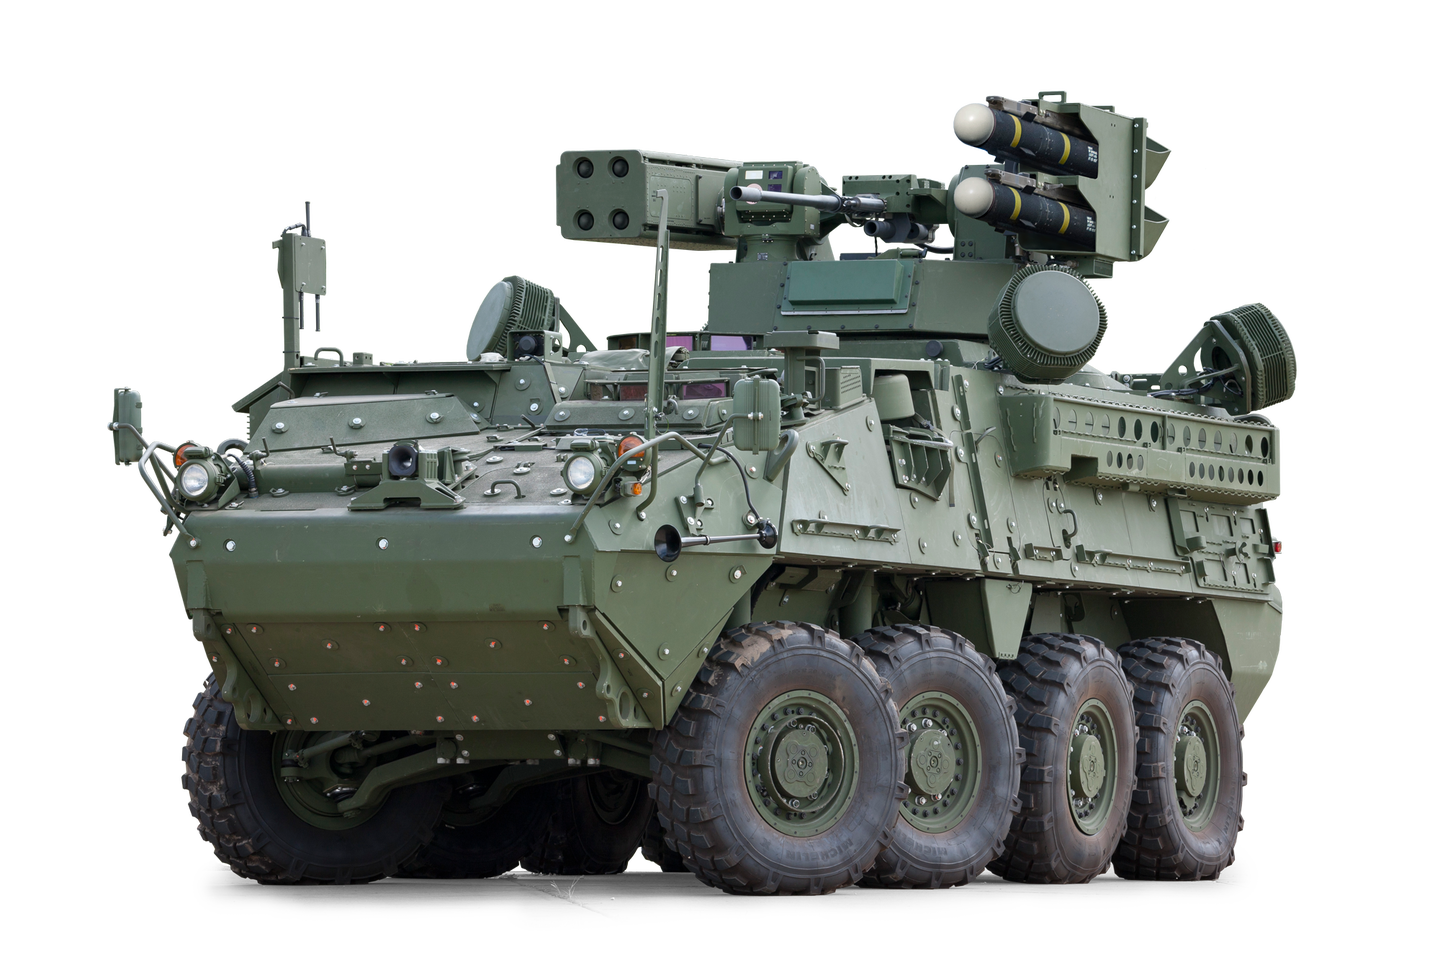 Soldiers are finally getting their hands on the Army's killer new missile-hauling Stryker